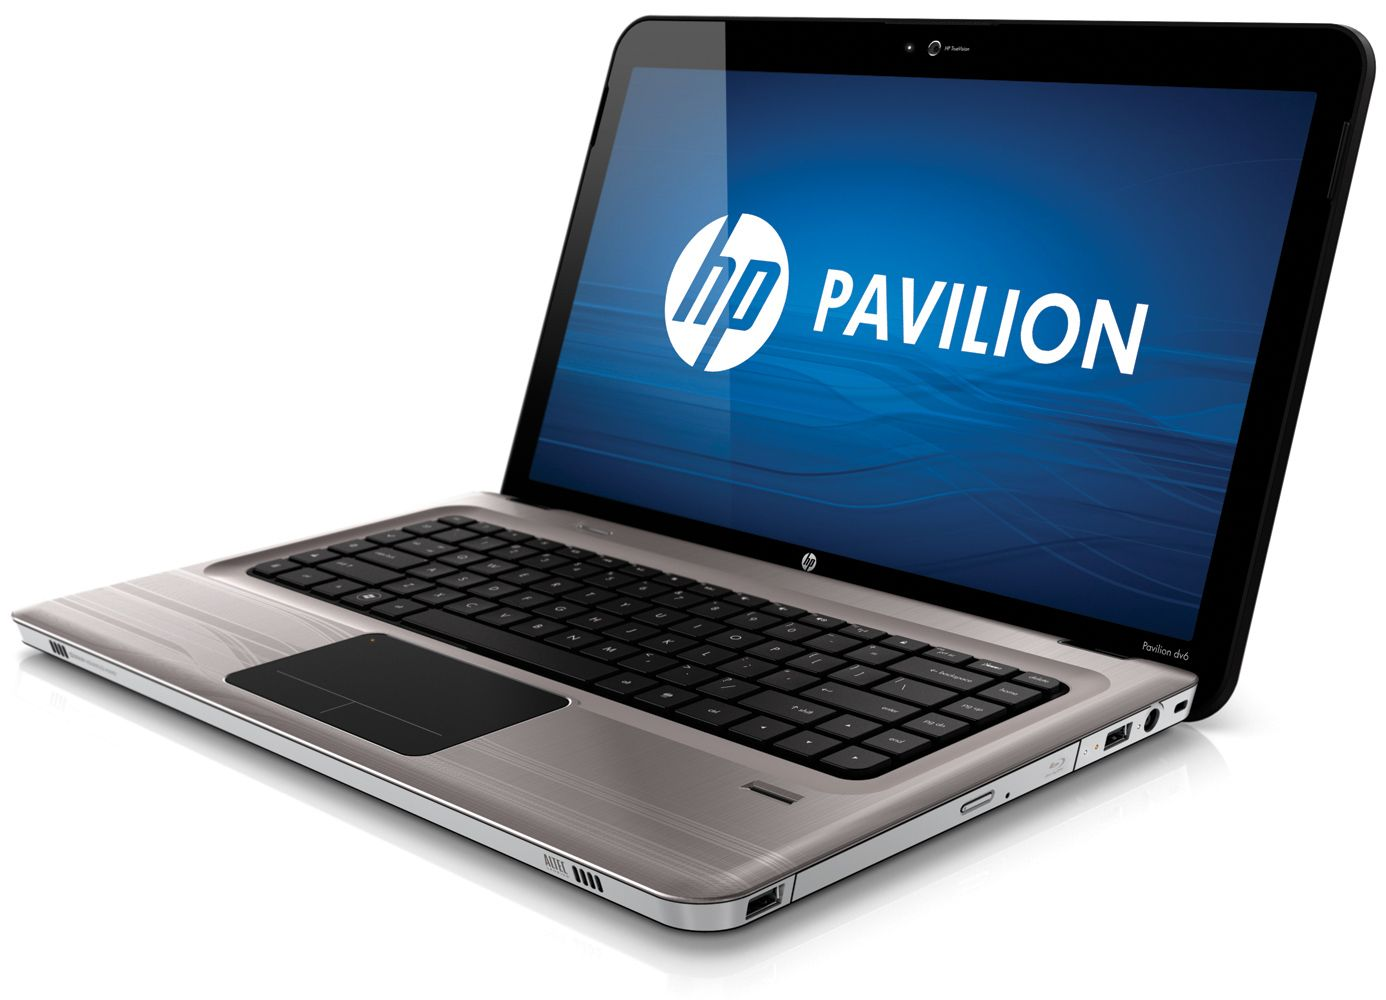 uk laptop parts: HP Pavilion Dv76c90us Notebook Review